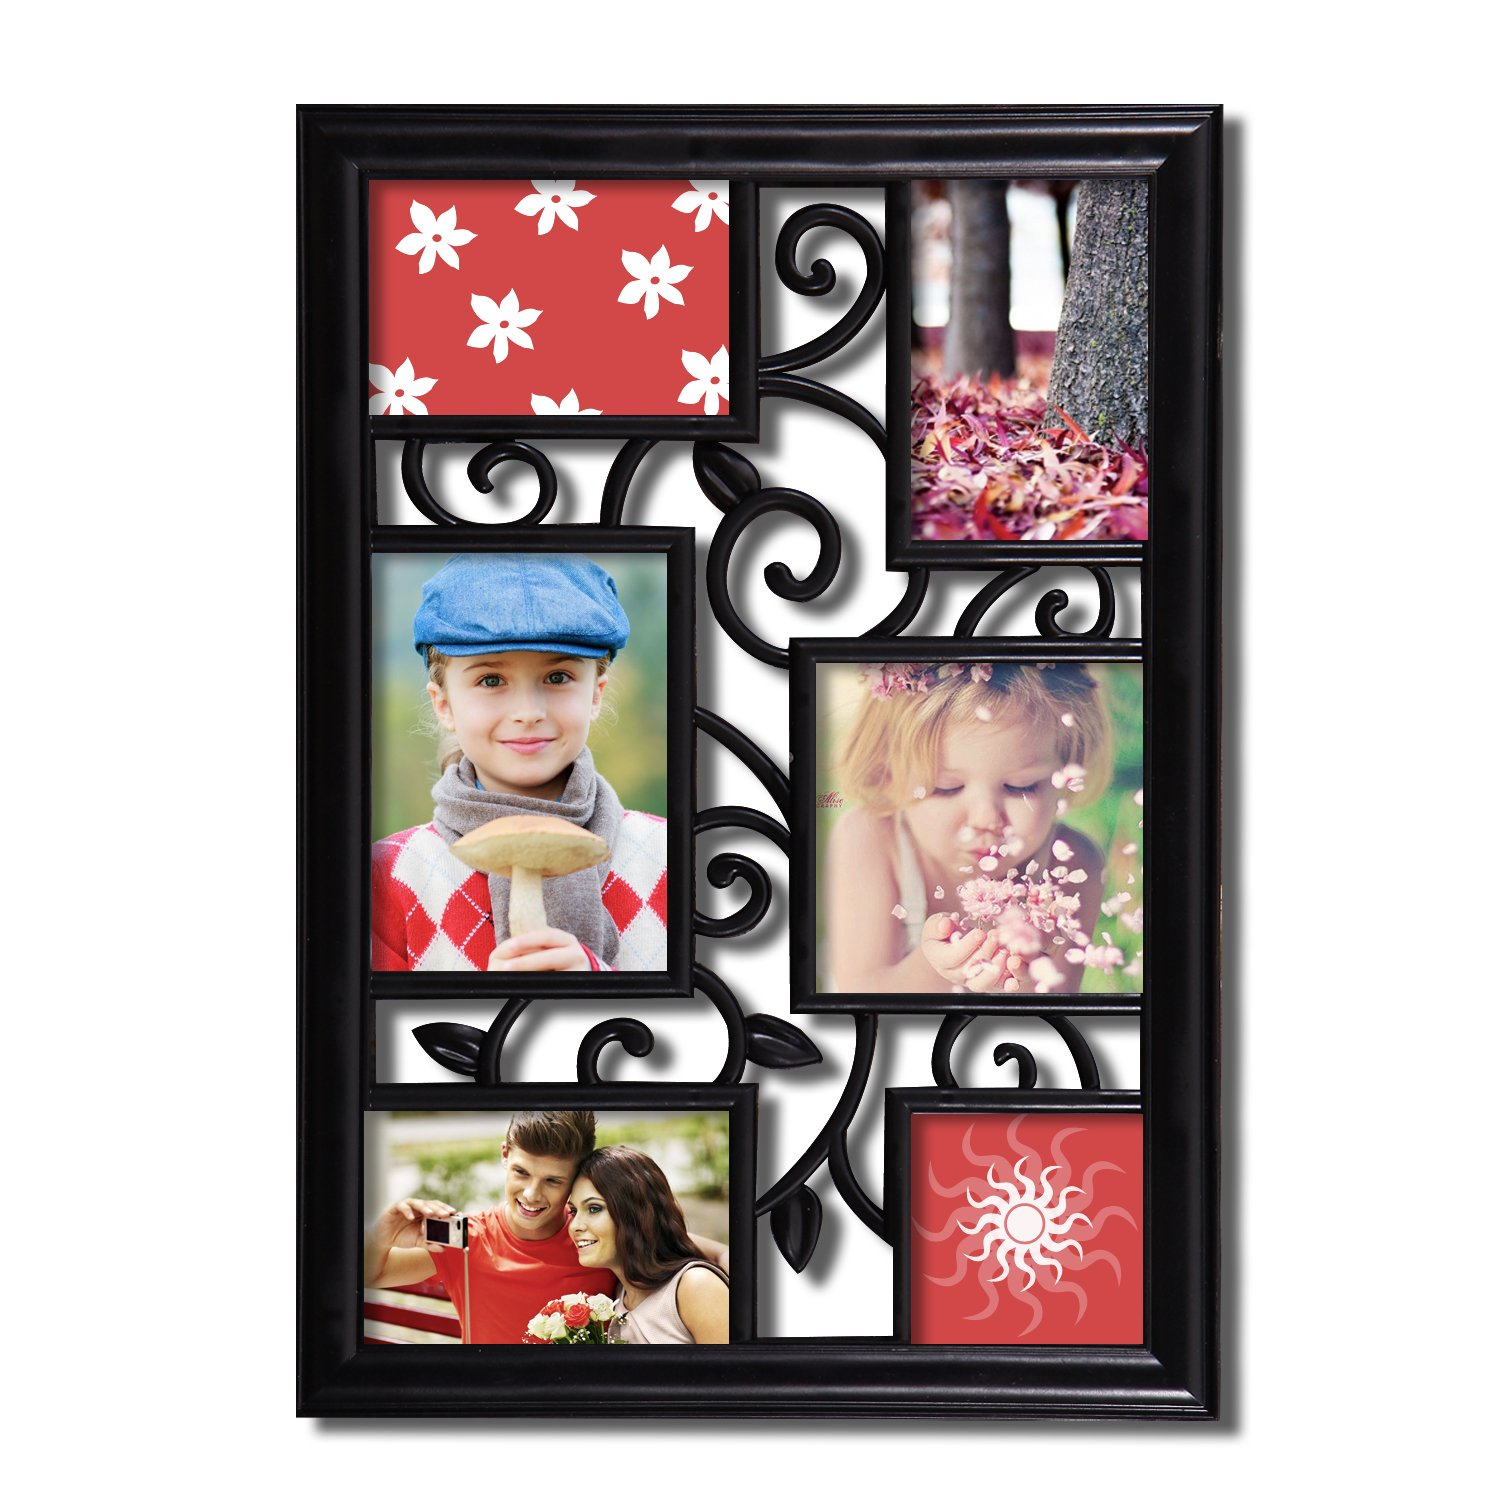 Adeco 6 Opening Decorative Black Filigree Wall Hanging Picture Frame - Made to Display Three 4x6, One 4x4, One 5x7, and One 5.5x5.5 Photo PF0471